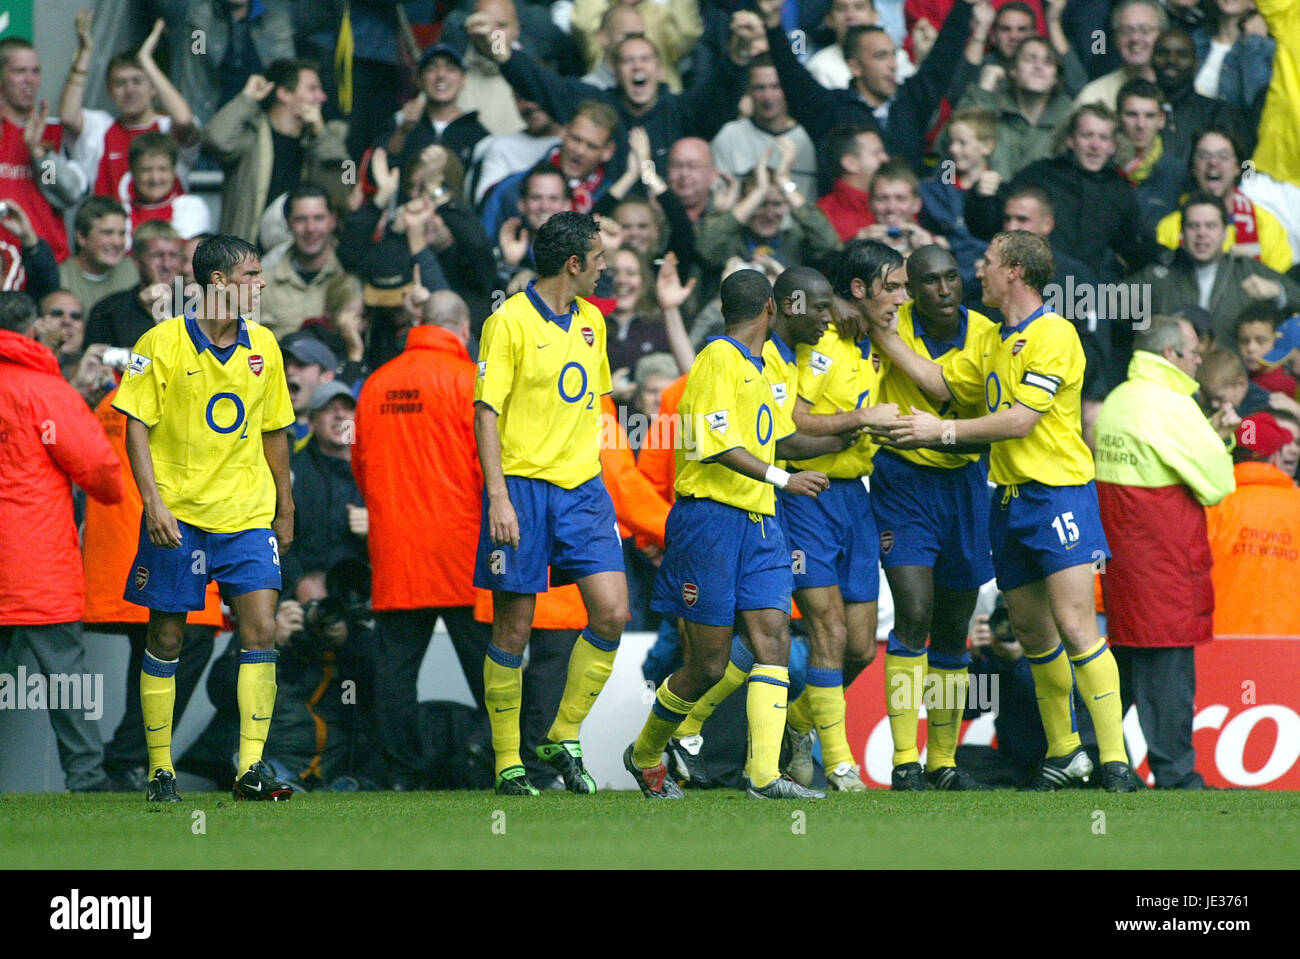 ROBERT PIRES & TEAM MATES LIVERPOOL V ARSENAL ANFIELD LIVERPOOL ENGLAND 04 October 2003 - Stock Image